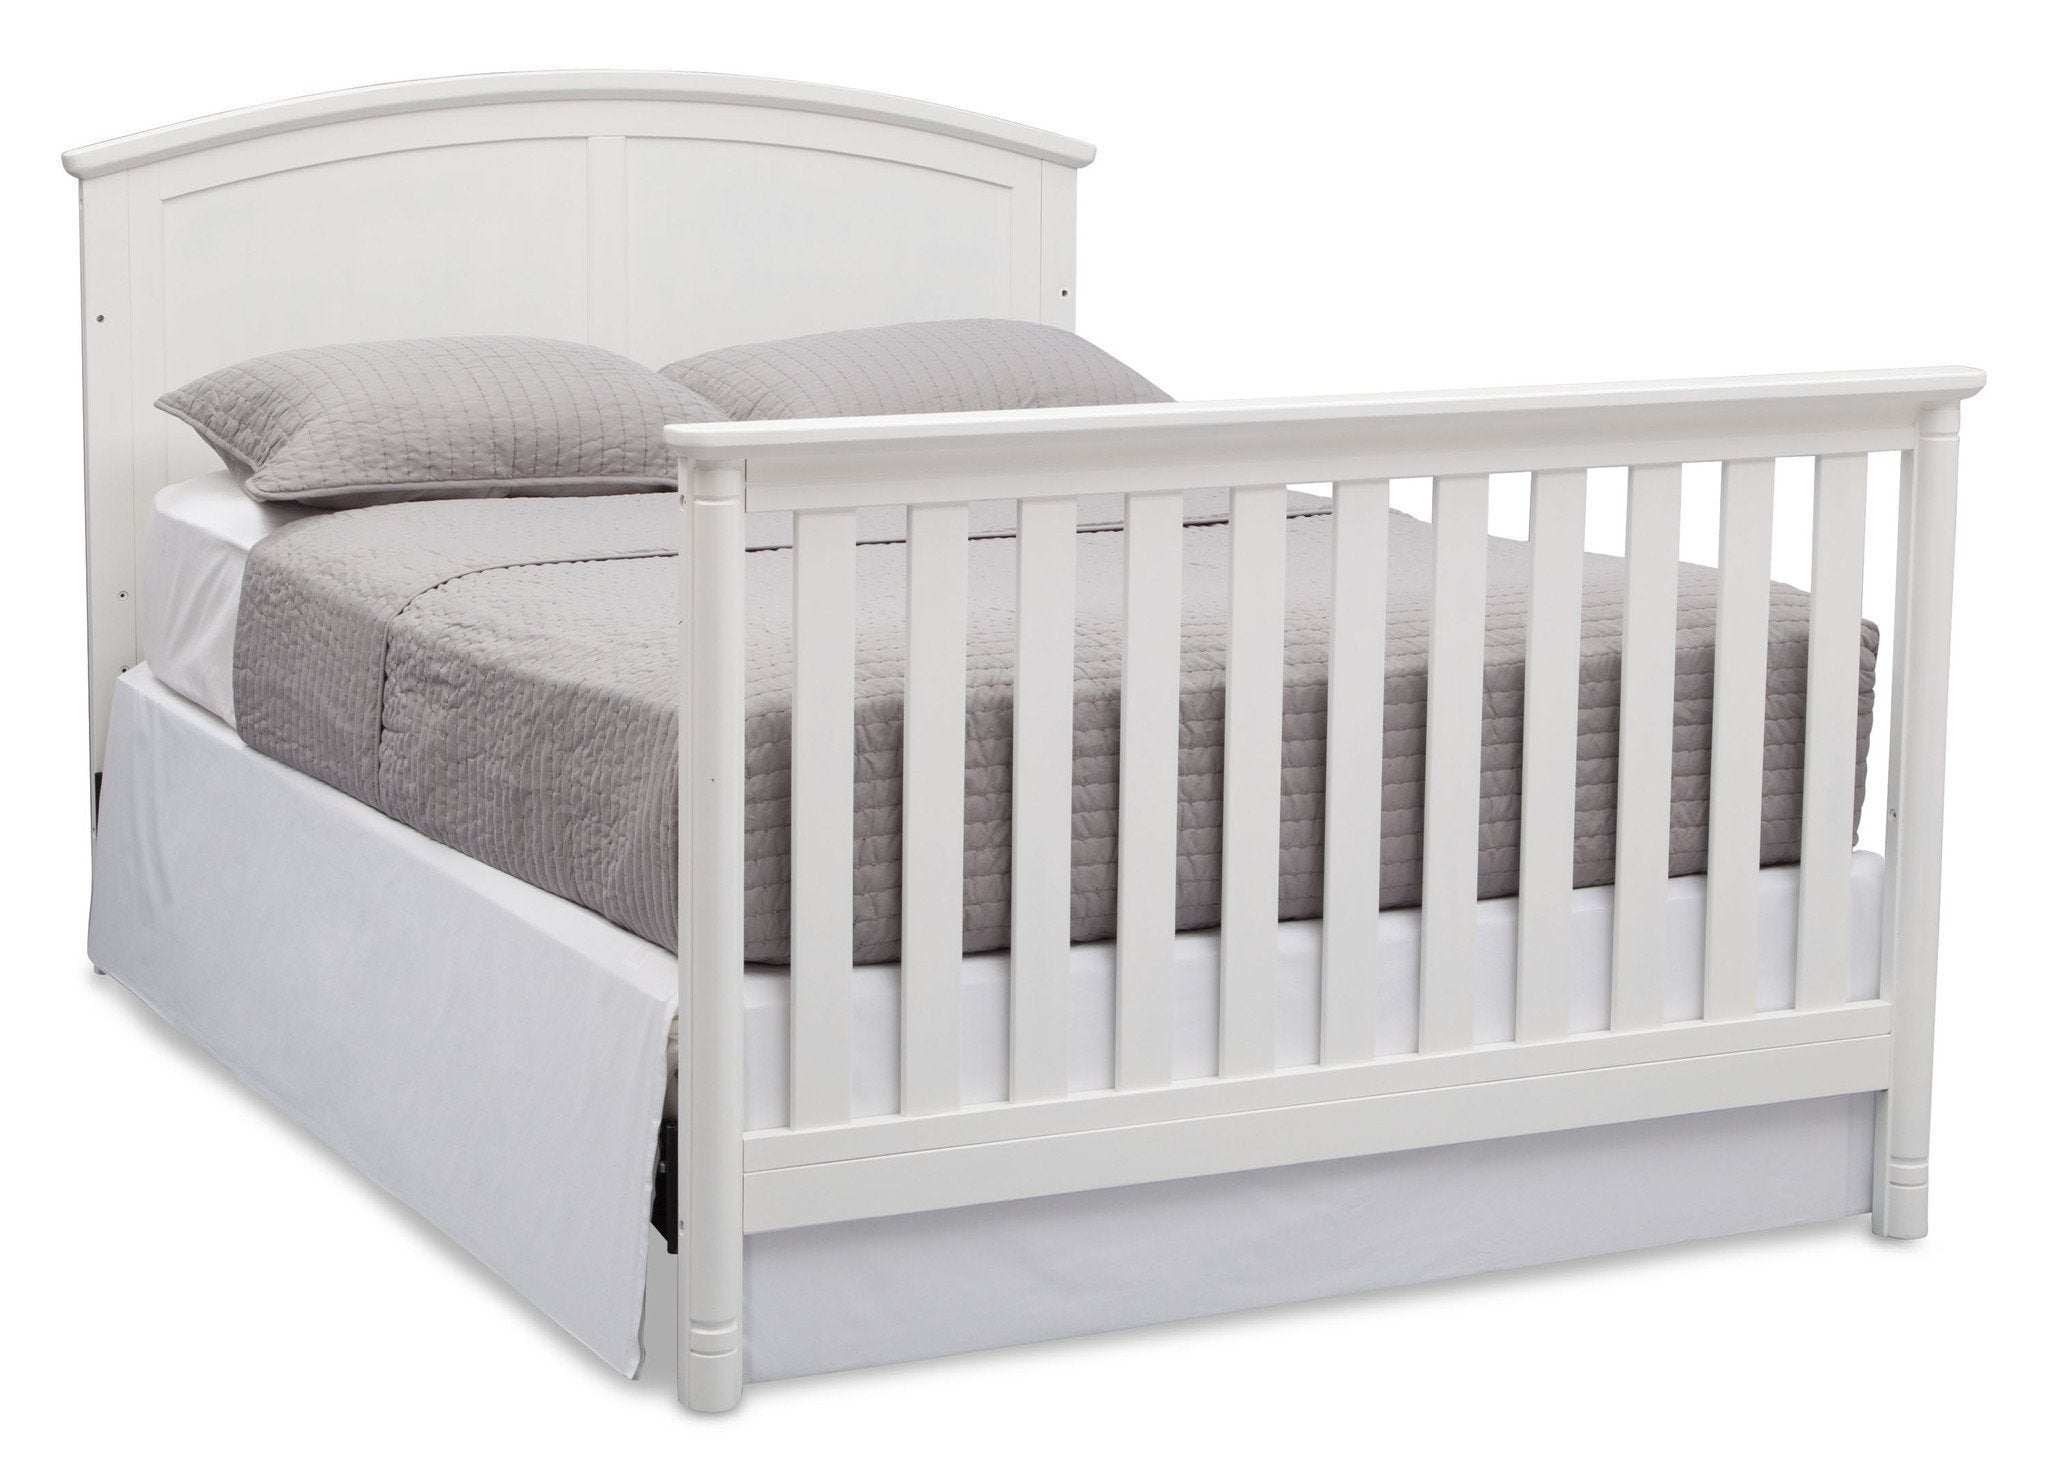 Delta Children White (100) Somerset 4-in-1 Crib, Full-Size Bed Conversion with Footboard a6a